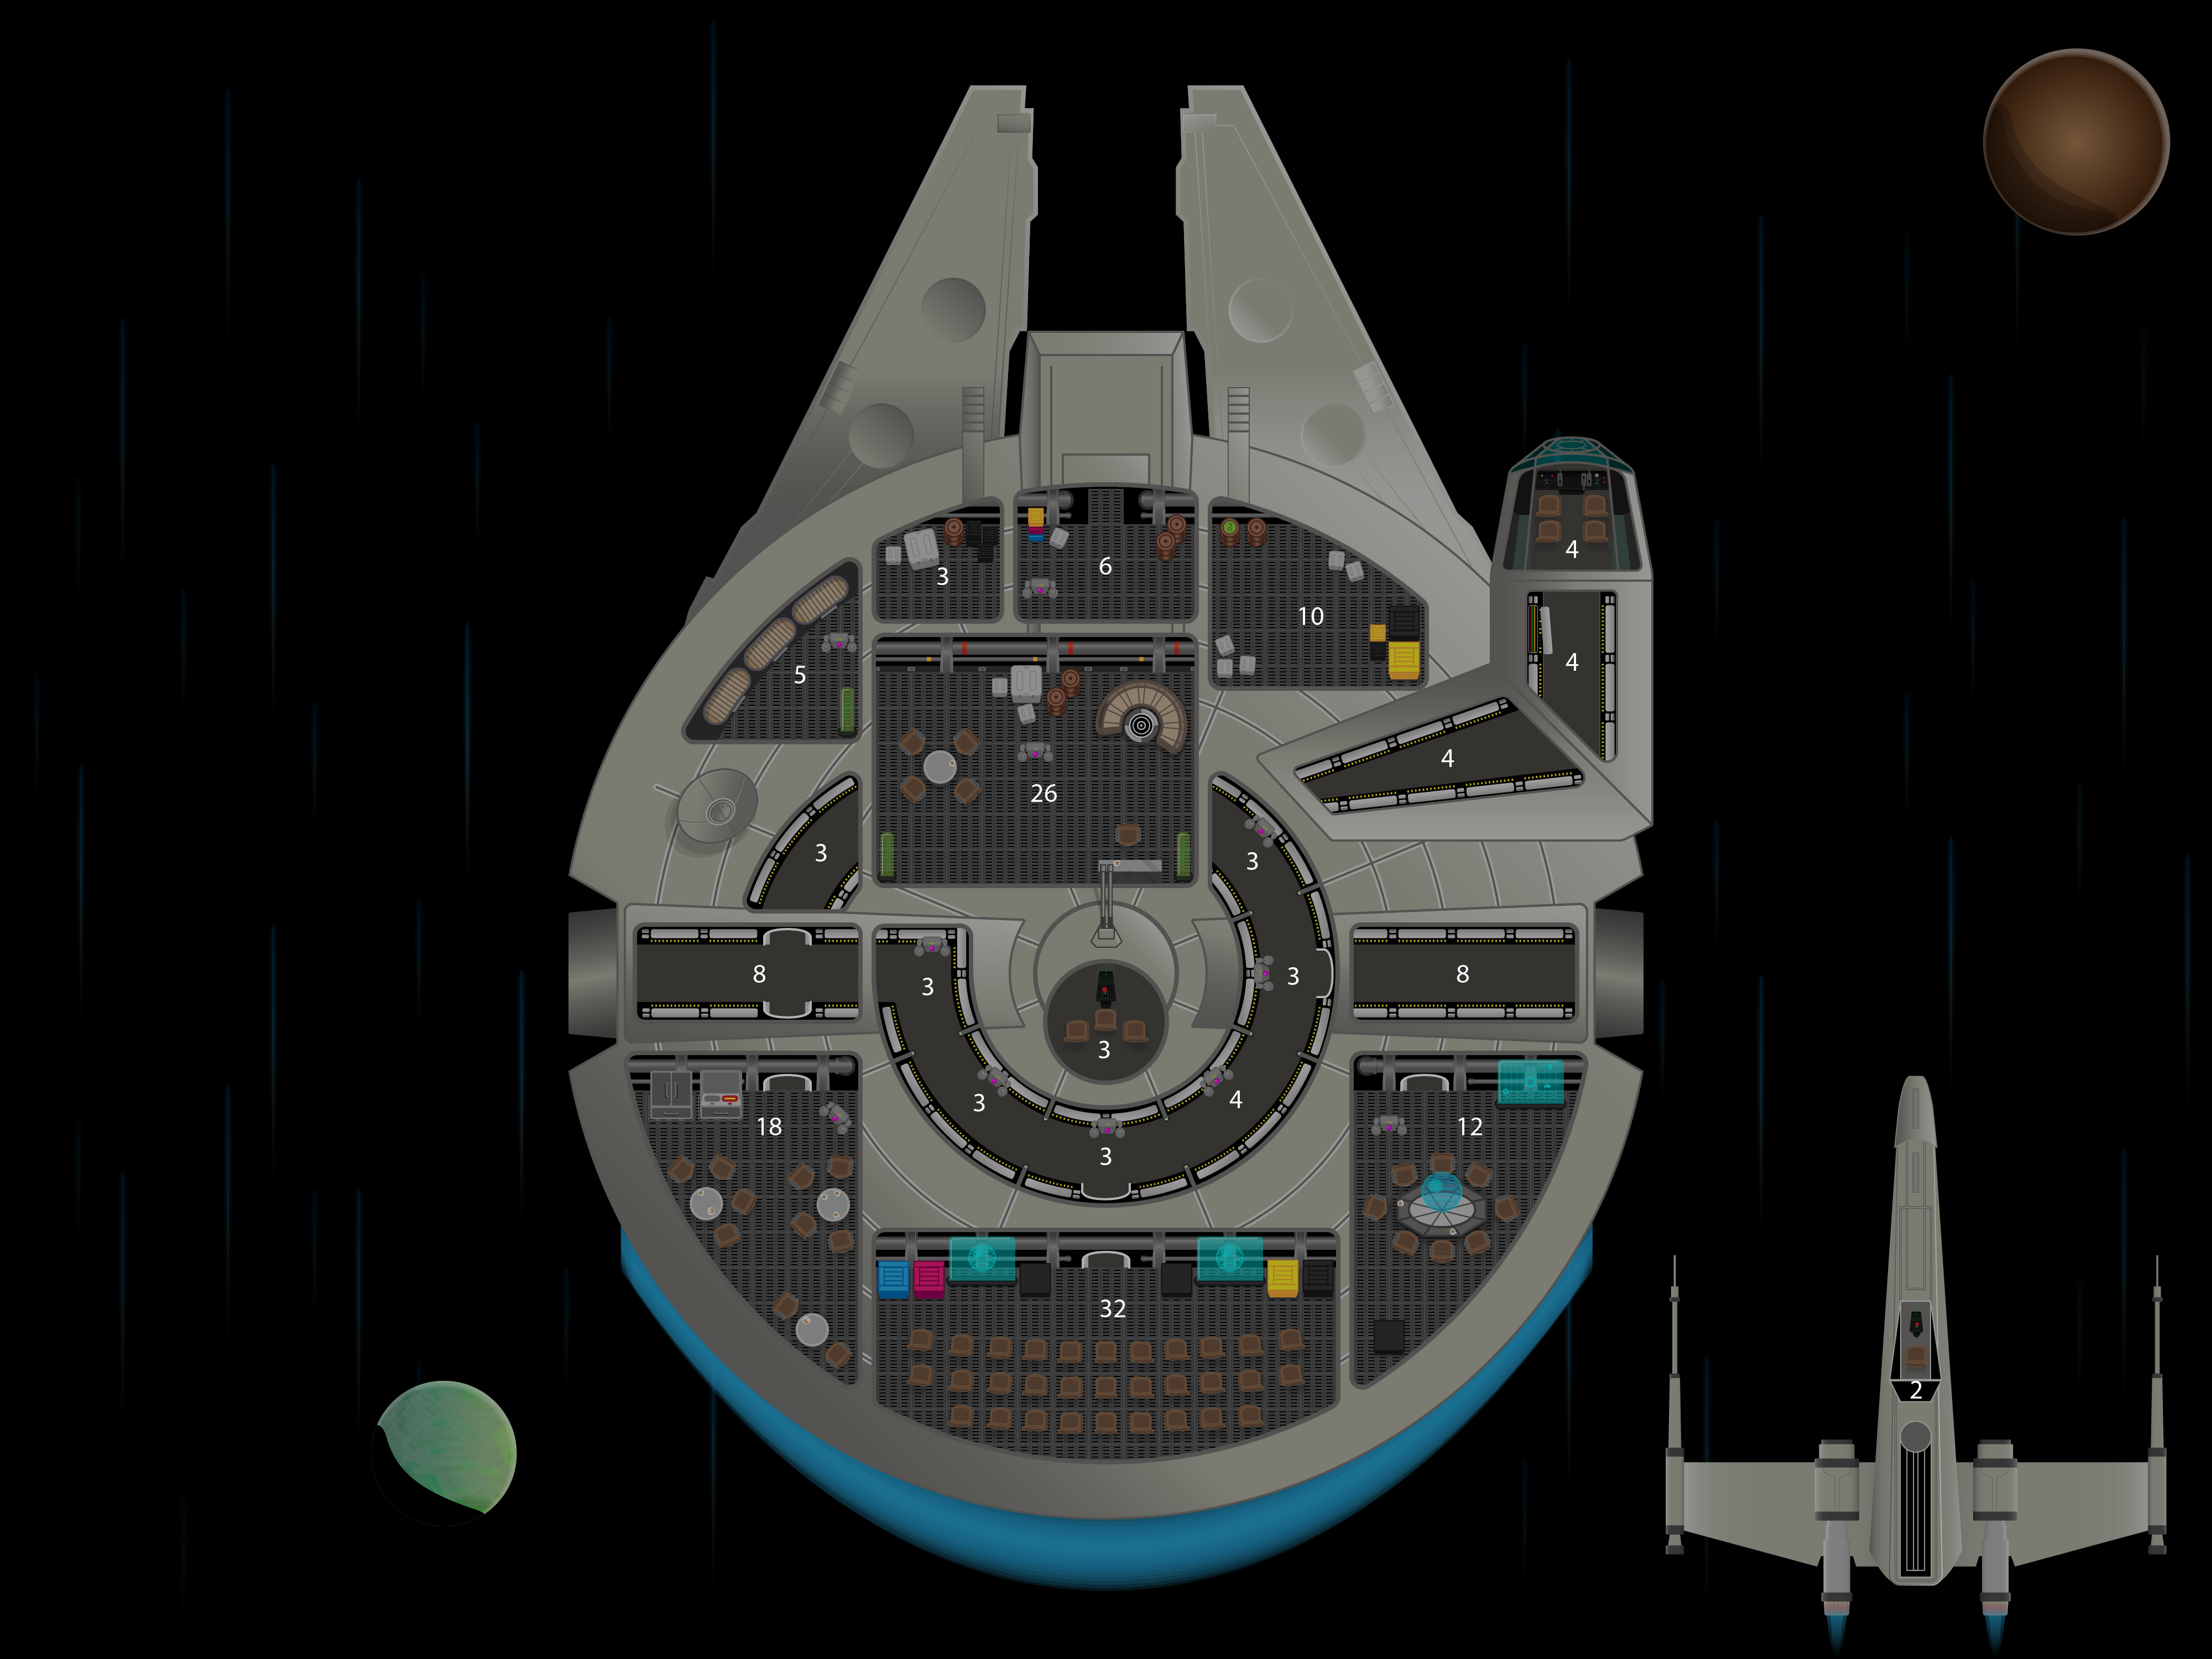 Millennium_Falcon_roomcapacities.png